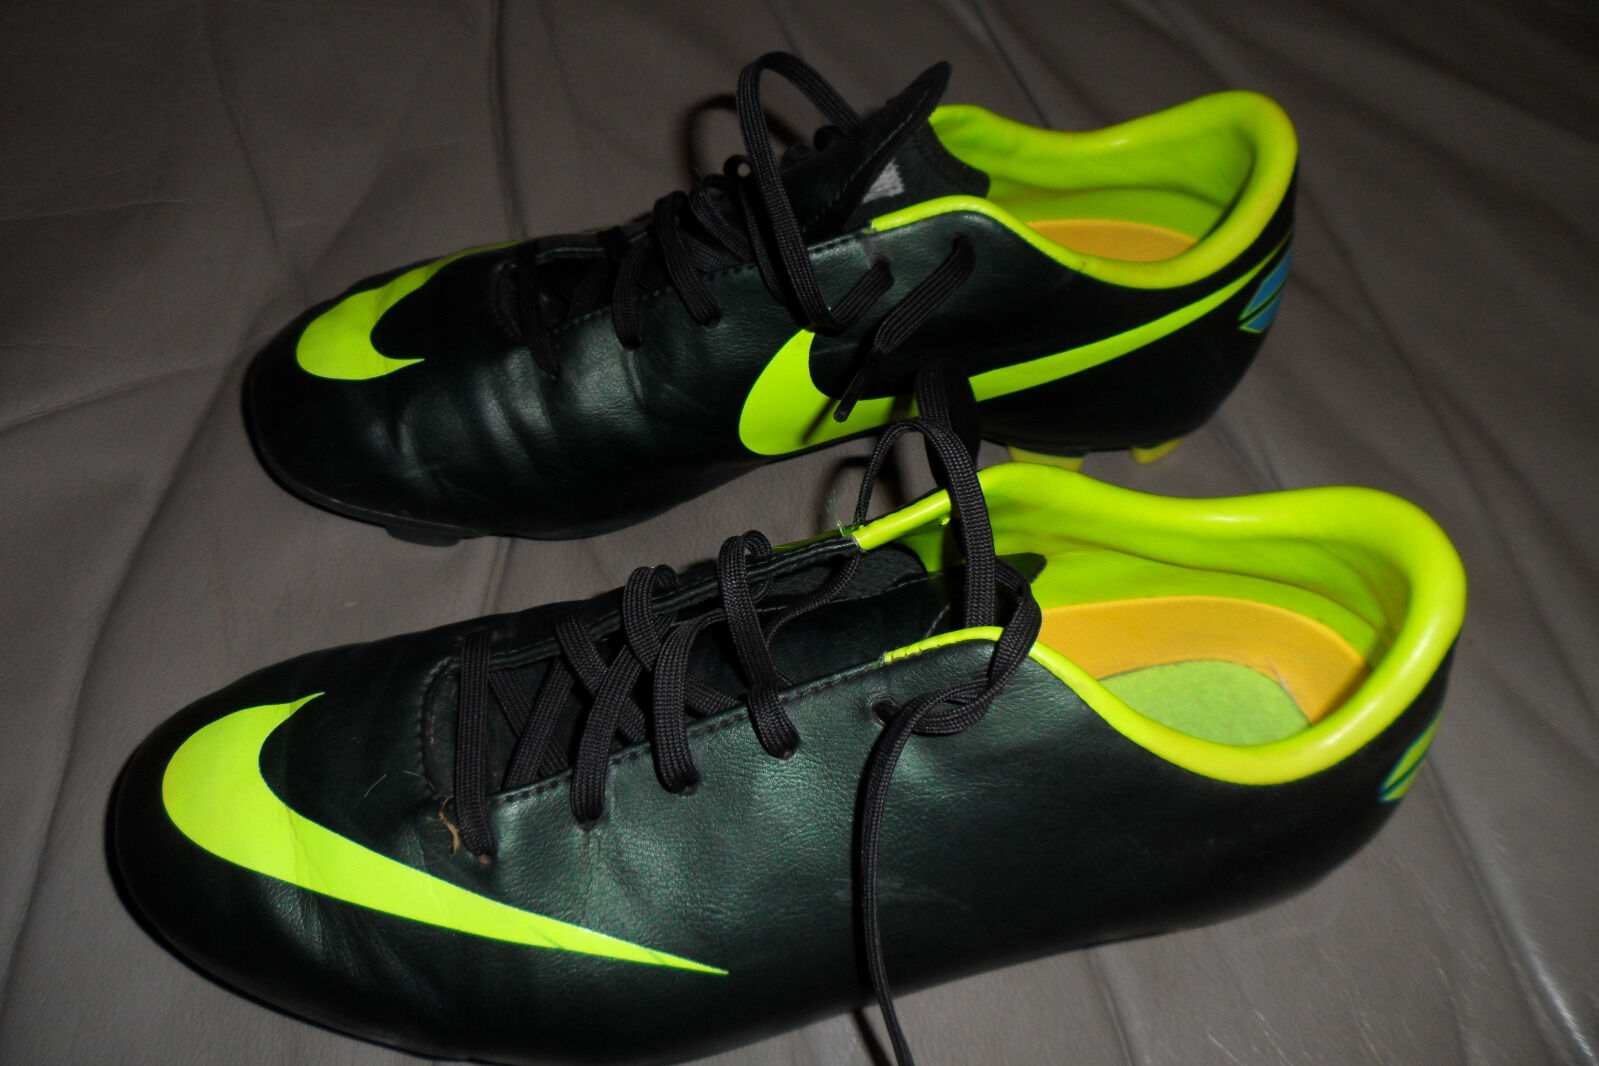 NIKE MERCURIAL OUTDOOR SOCCER CLEATS, MINT MINT MINT CONDITION, Dimensione 6Y b8edb7